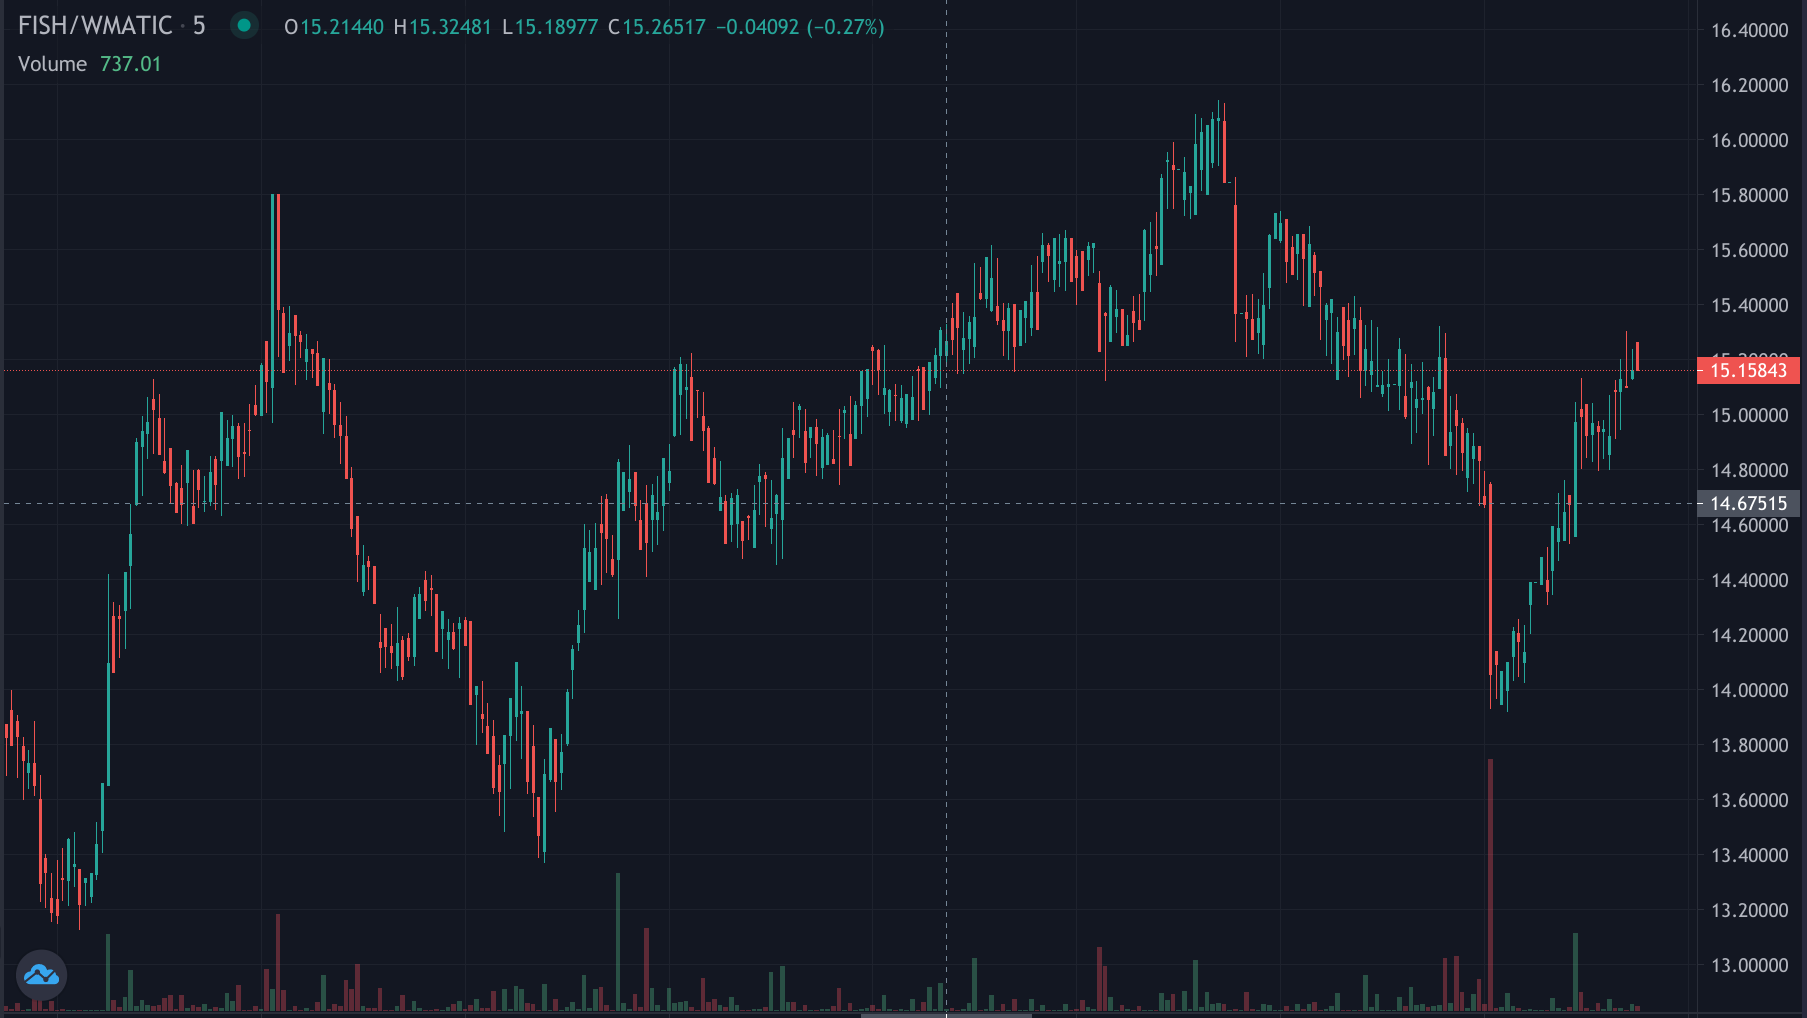 Fish/Matic chart showing a new uptrend